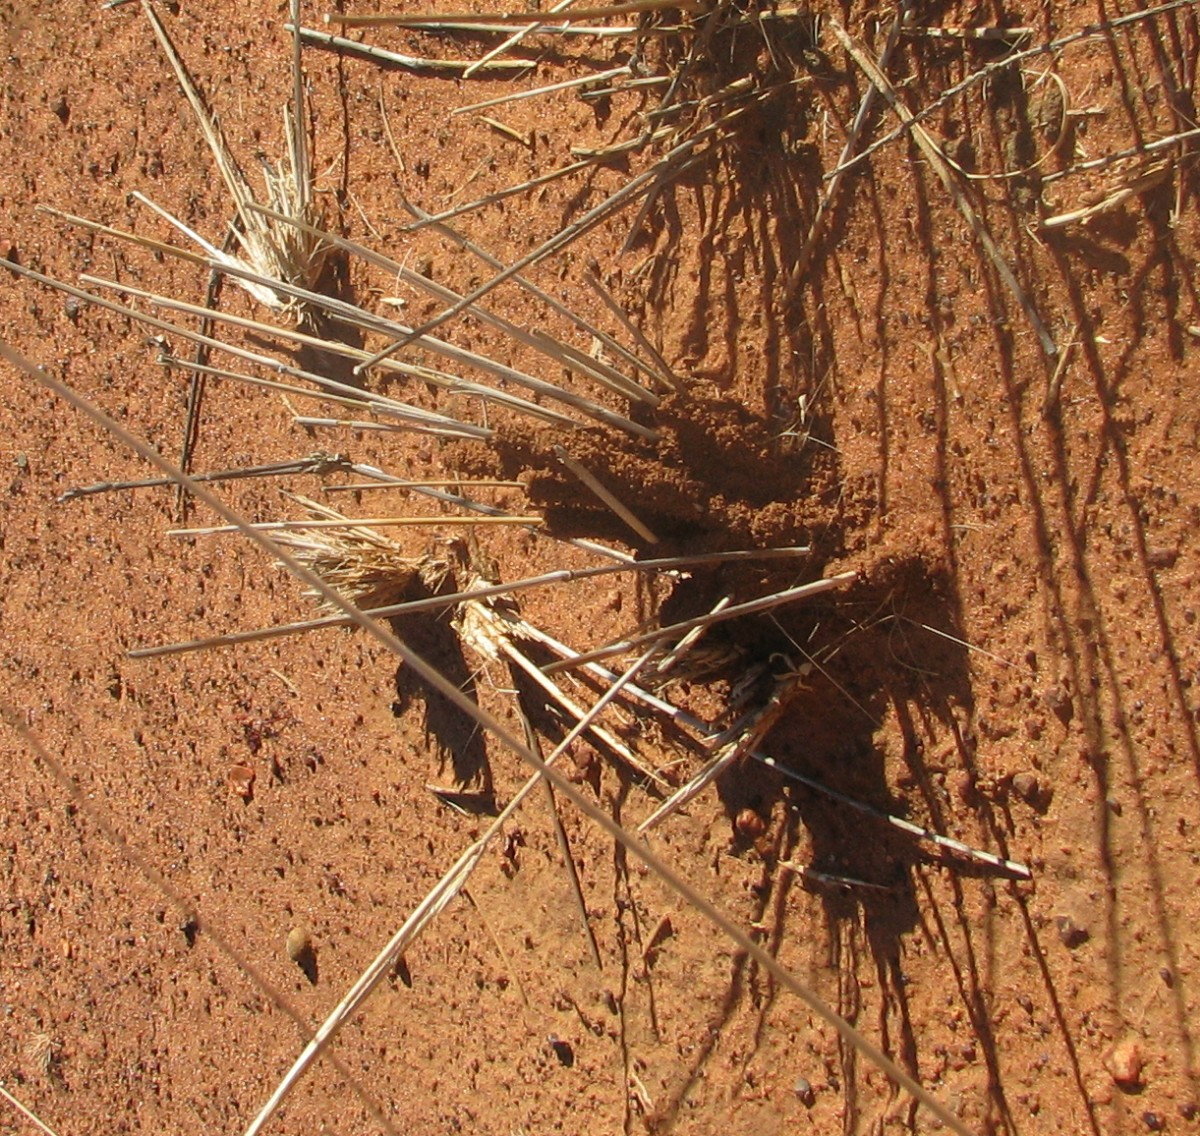 The termite mound starts on a piece of grass